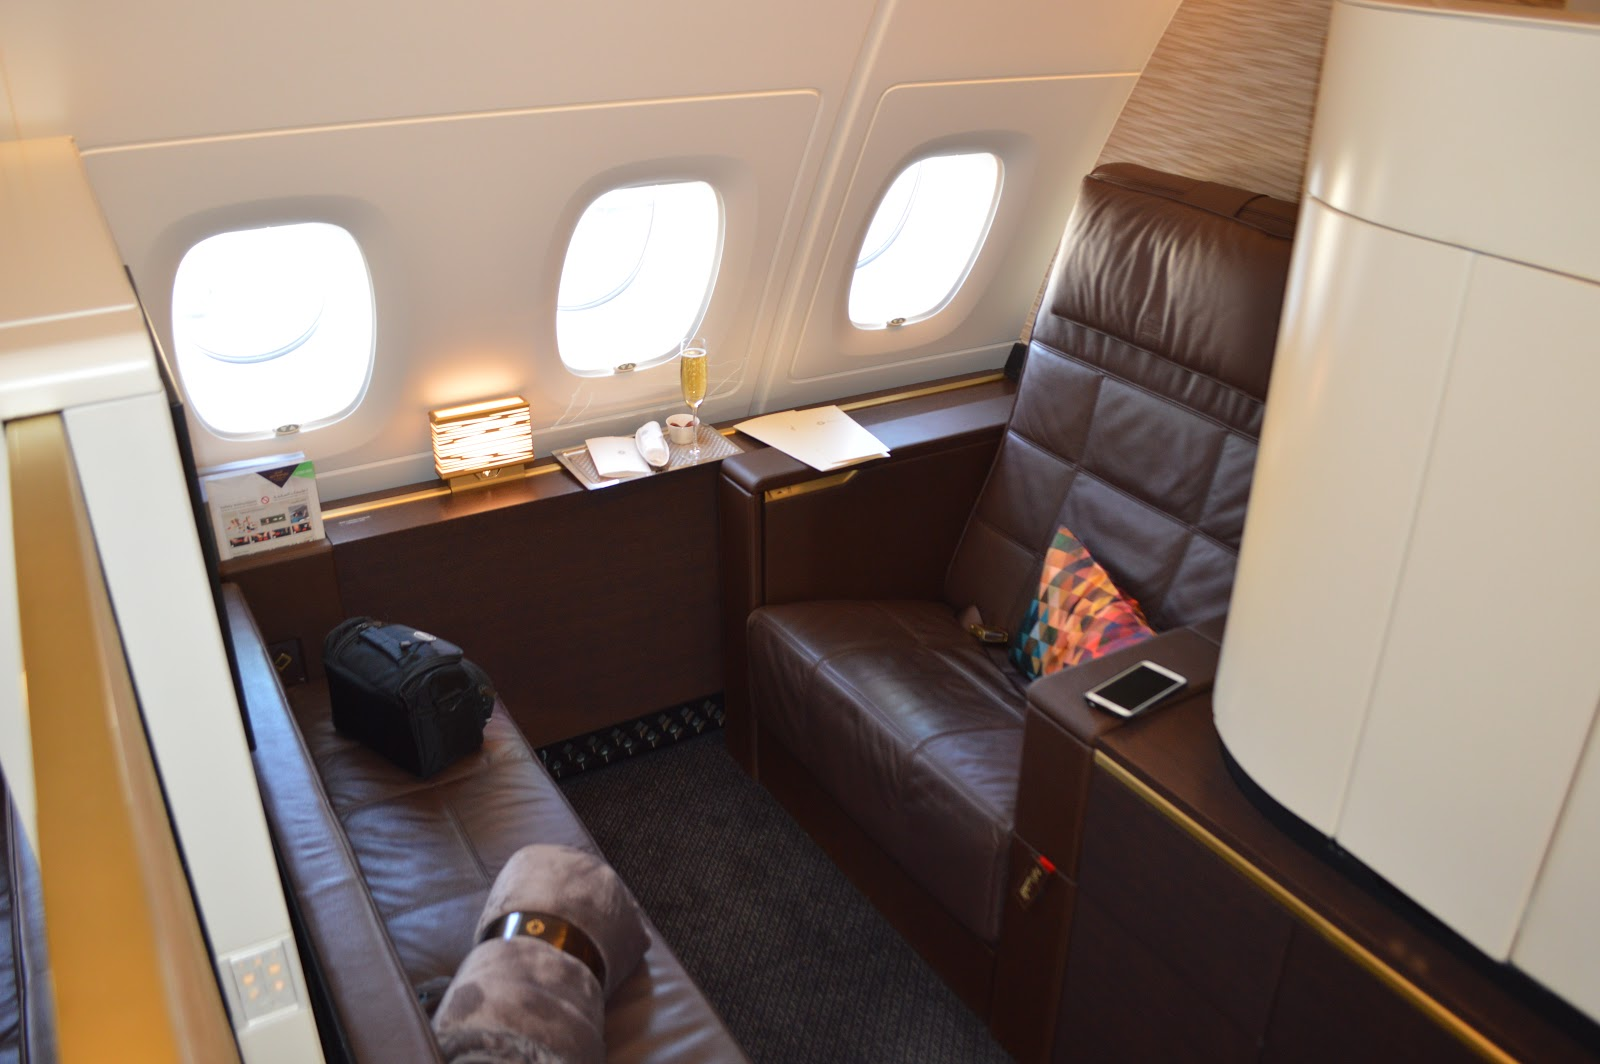 Pic etihad airways a380 first class apartment 4k may 2015 - Apartment 4k